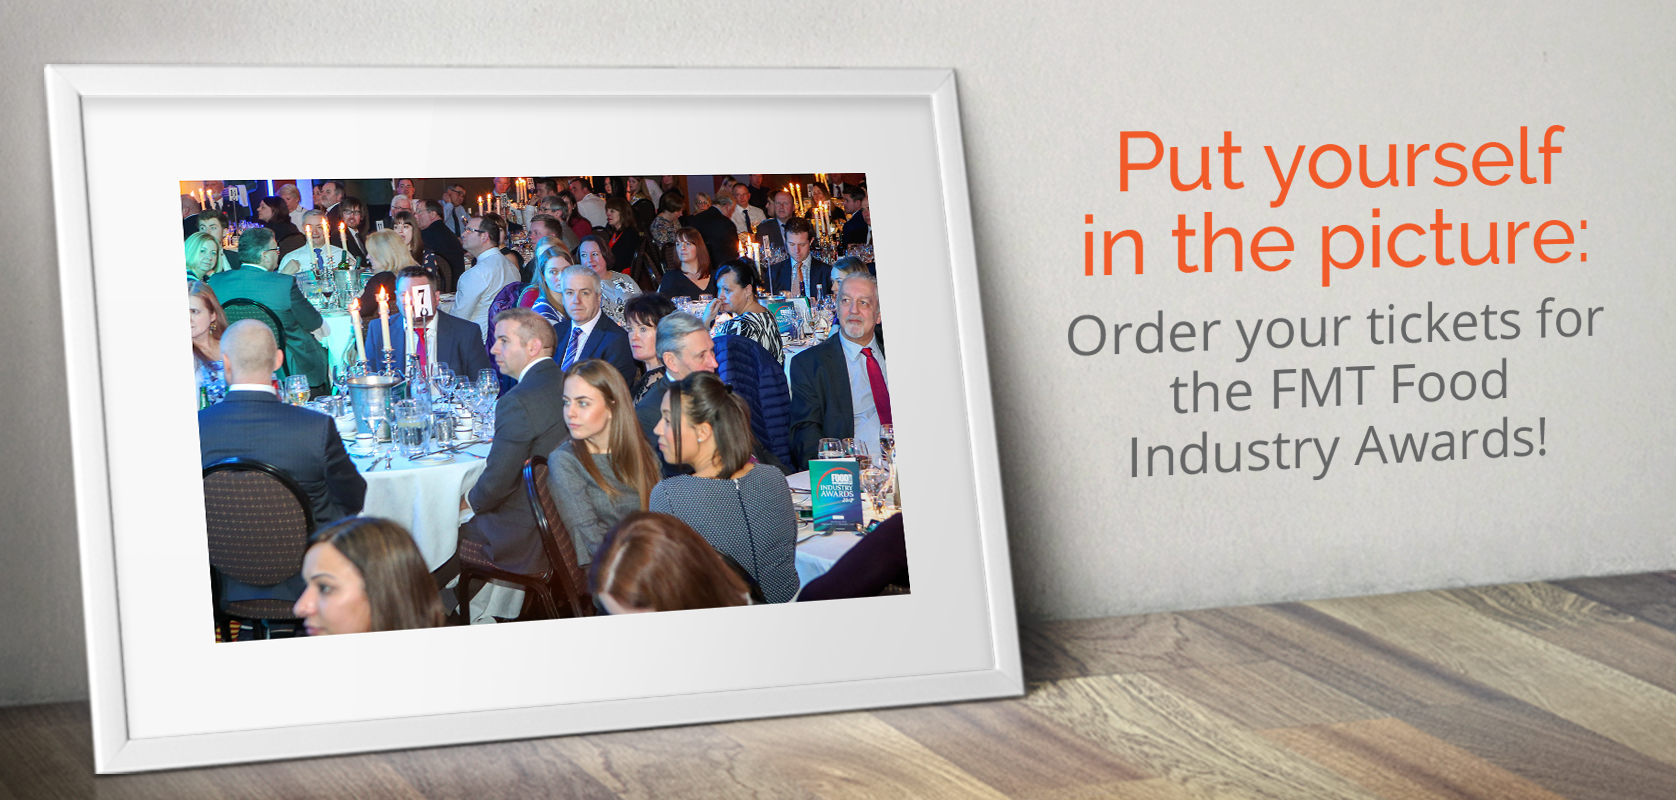 Put yourself in the picture - order your tickets for the FMT Food Industry Awards!